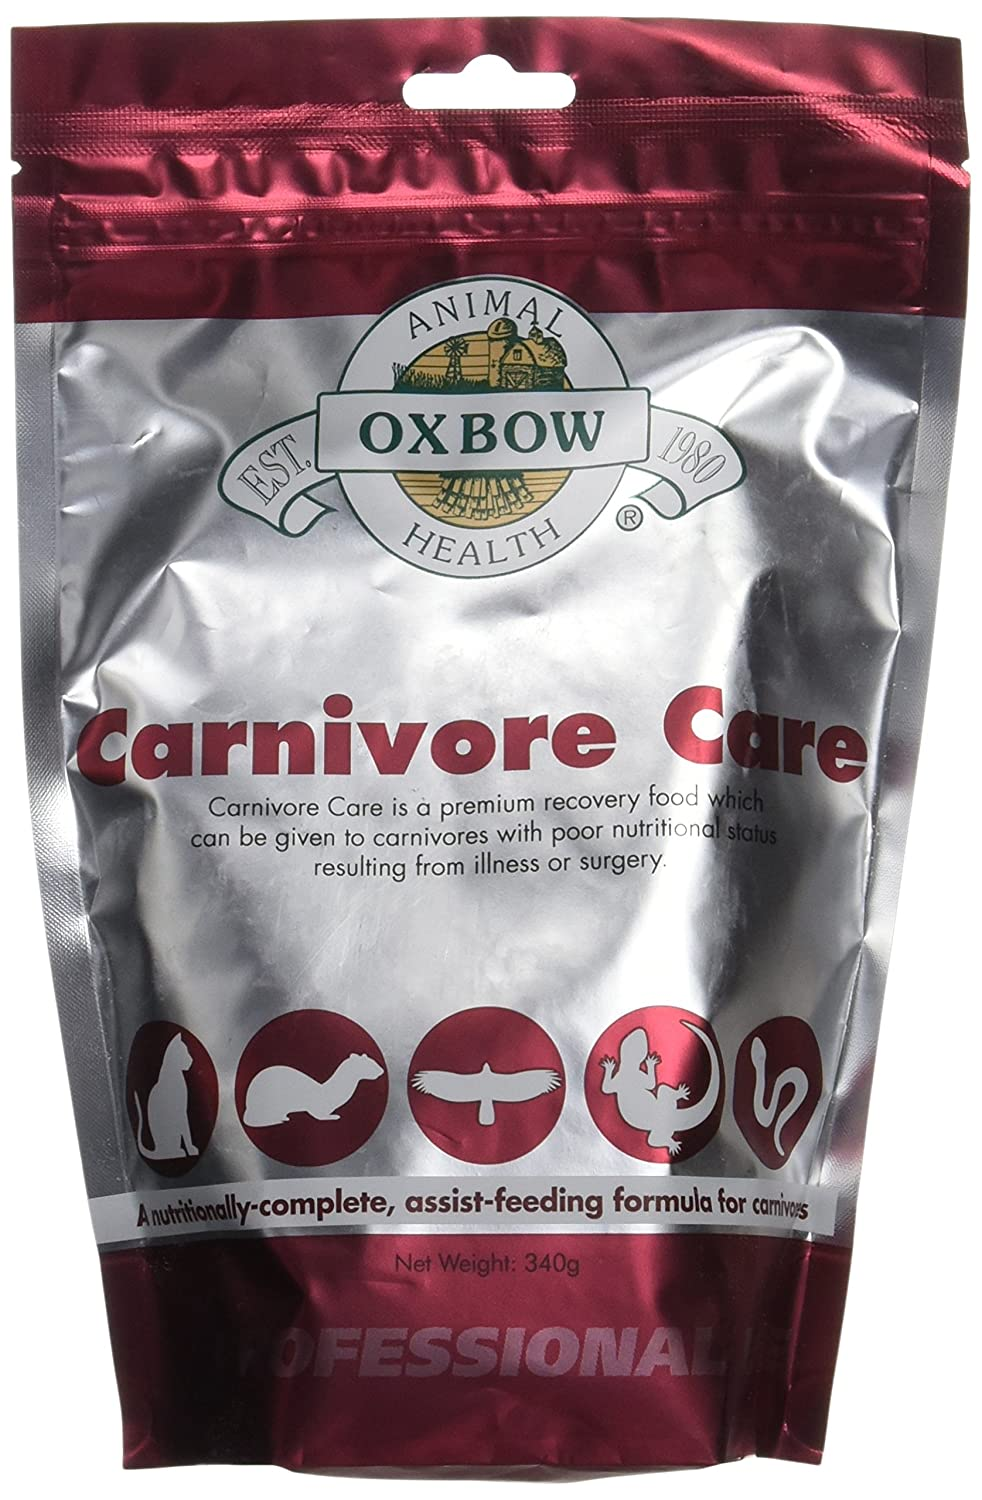 Carnivore Care (340 Gram) by Oxbow Oxbow Animal Health 529.15010.3